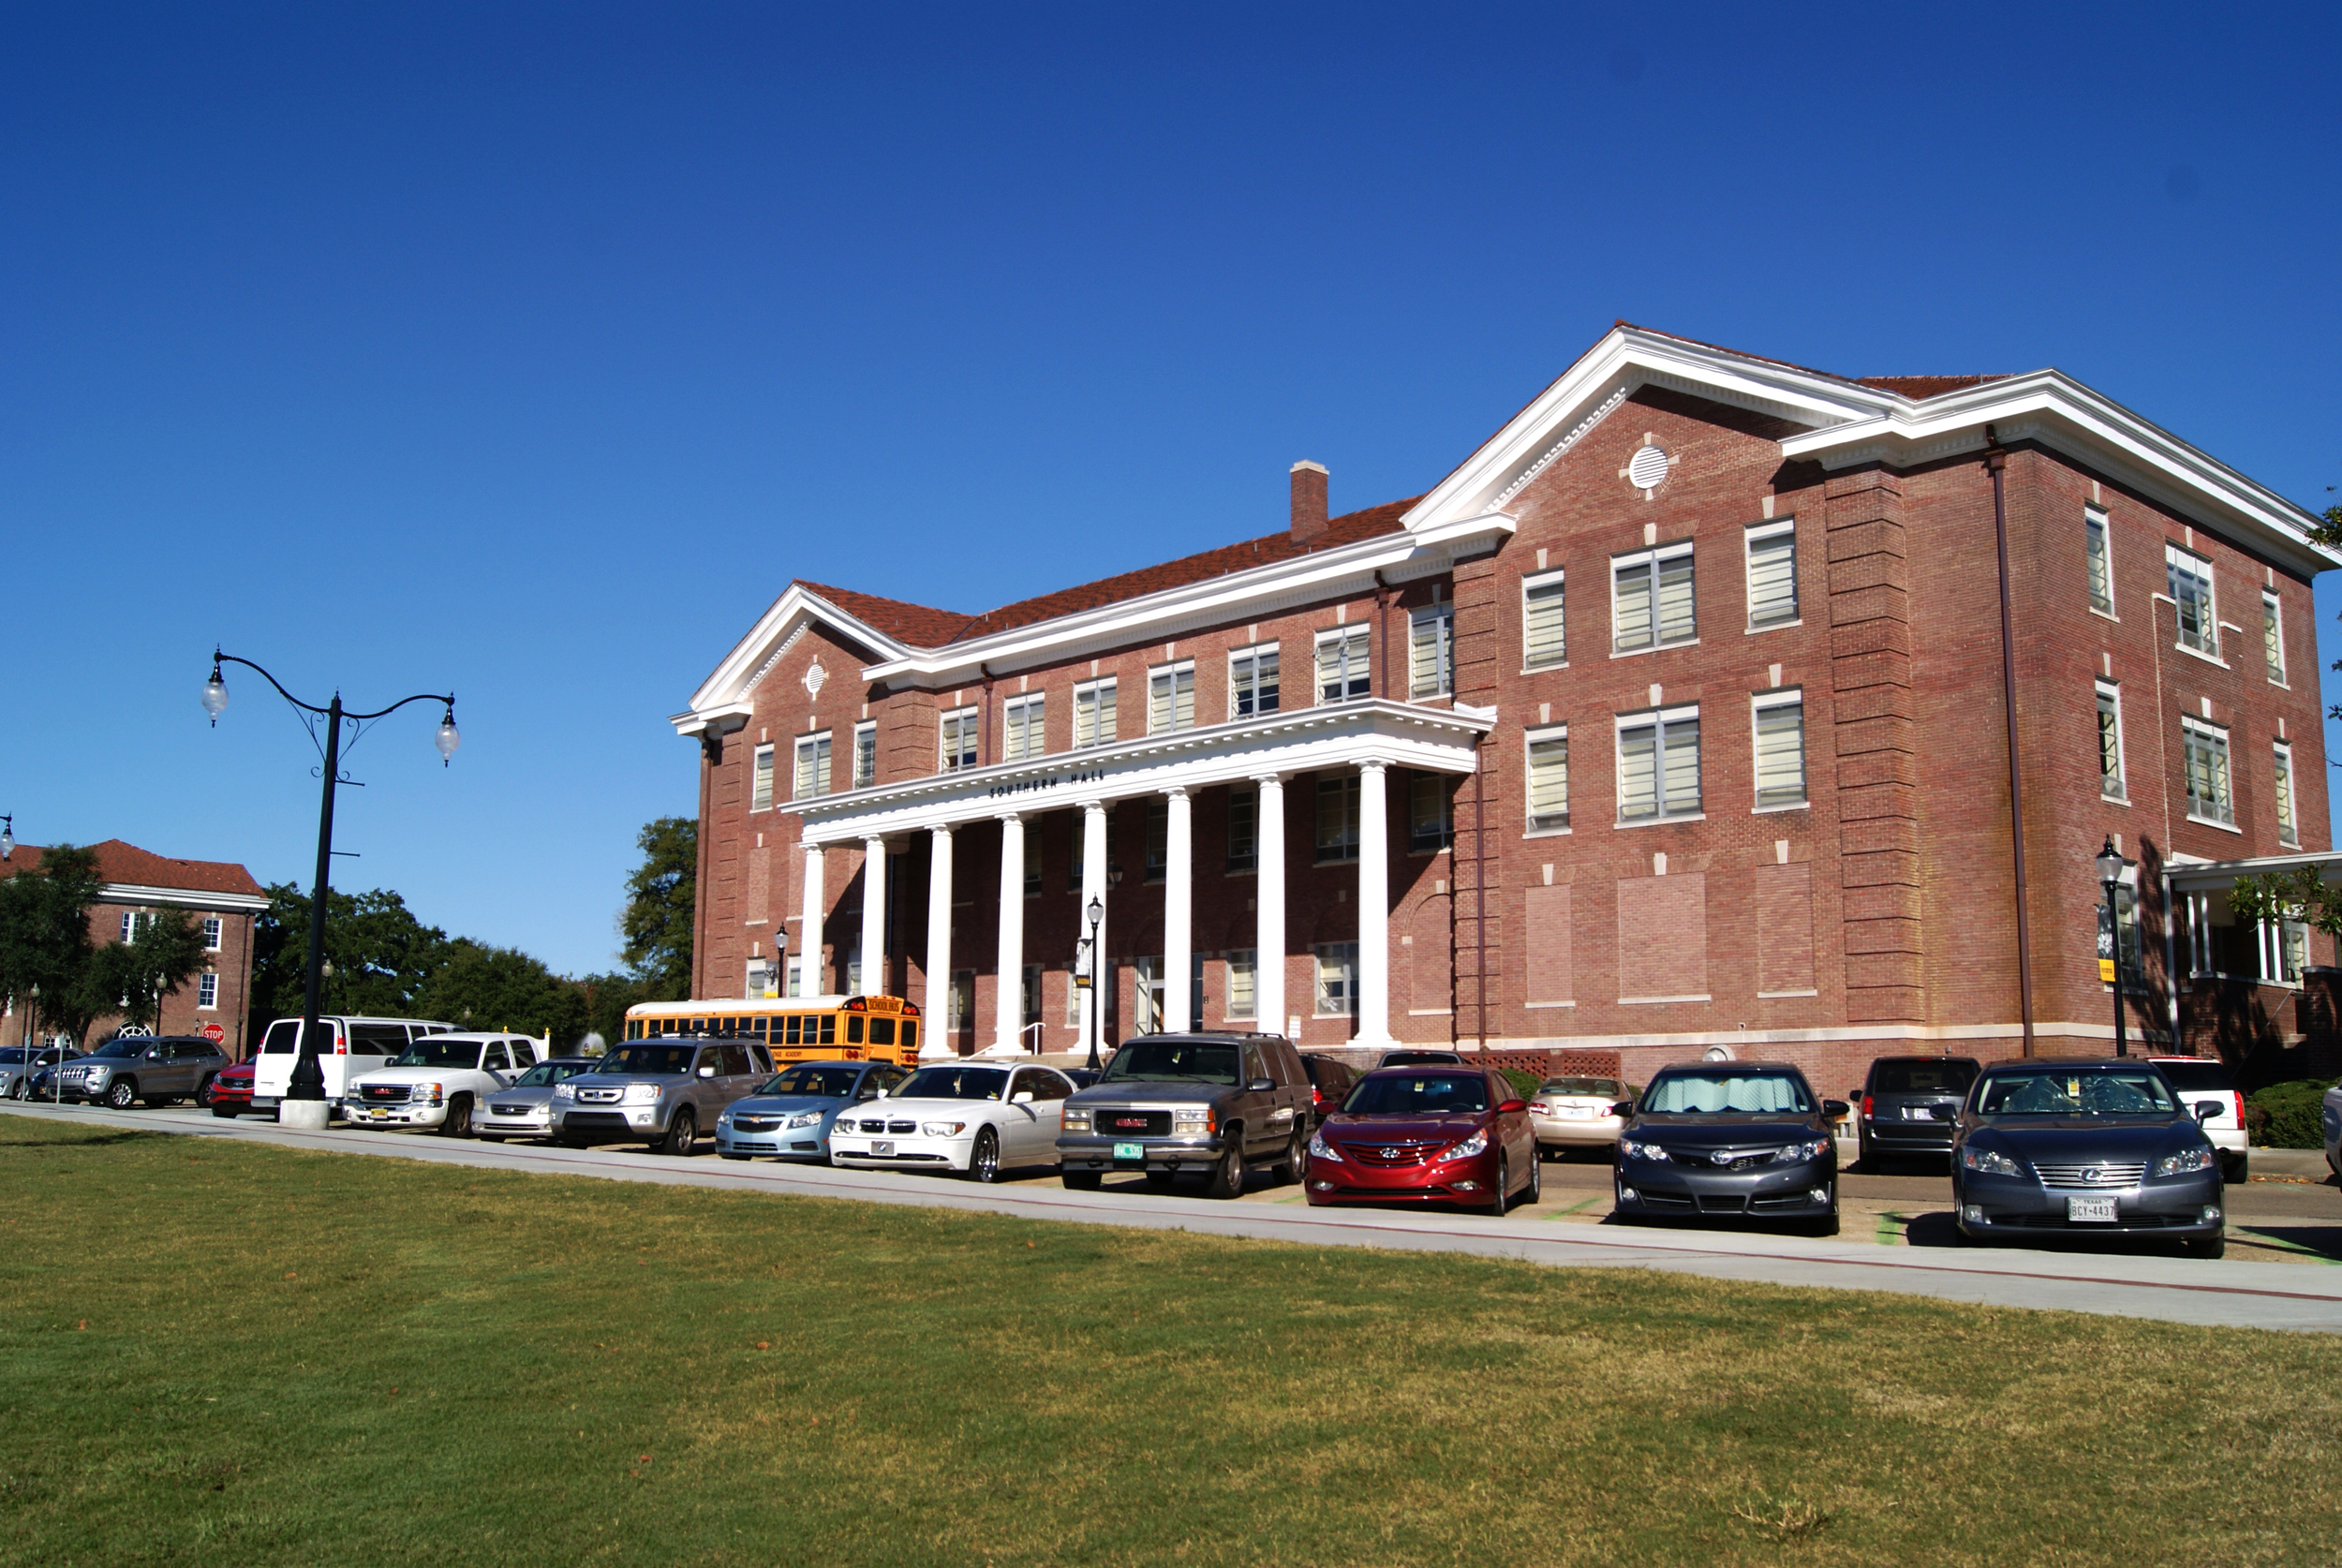 The reconstructed front lawn of Southern Hall, The University of Southern Mississippi. October 30, 2014, Hattiesburg, Miss.